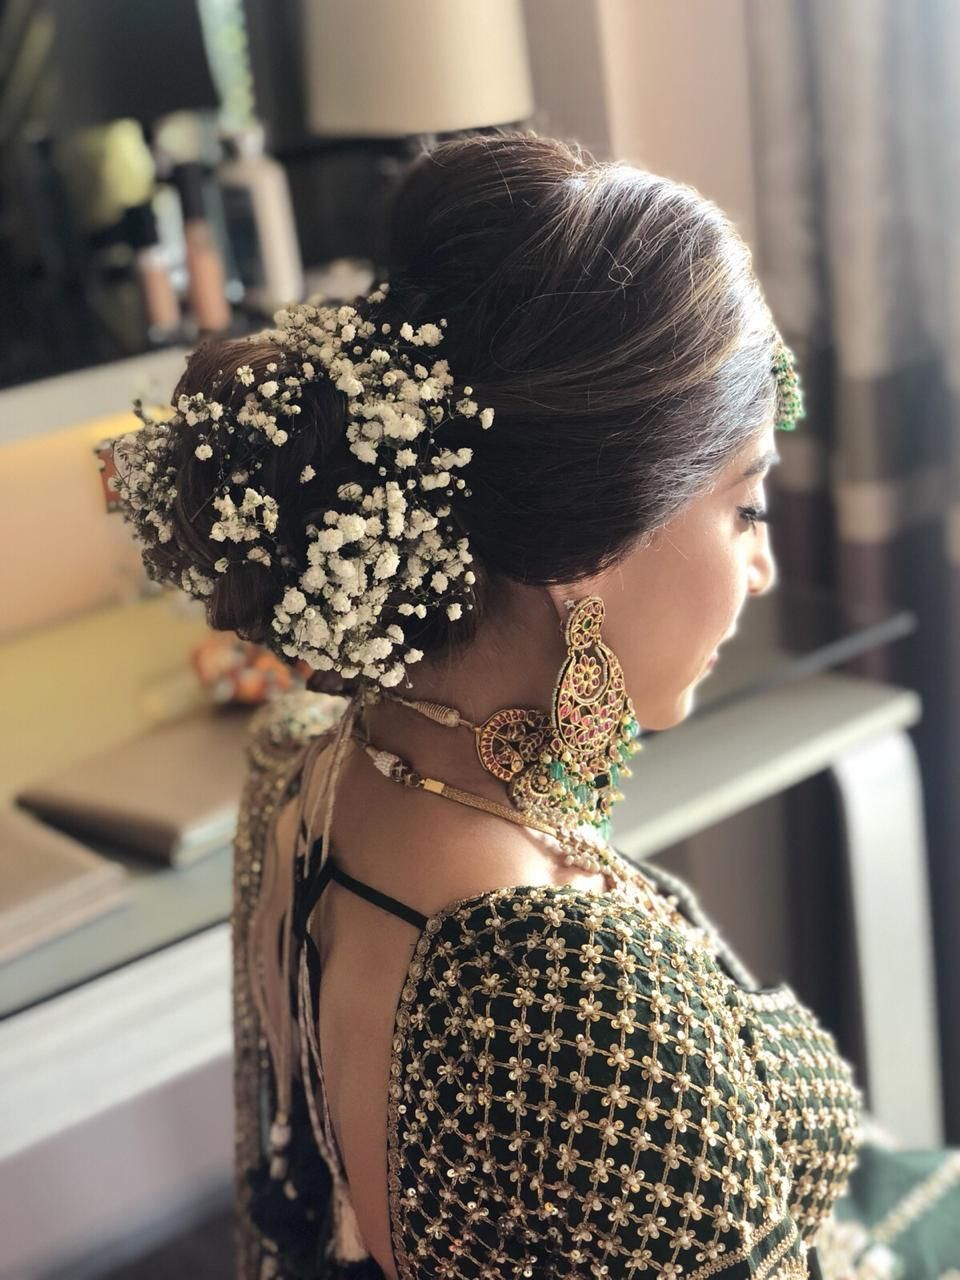 Pretty Bridal Bun With Baby Breath Flowers For An Indian Wedding See More On Wedmegood Com Wedme Bridal Hair Buns Indian Hairstyles Indian Bridal Hairstyles